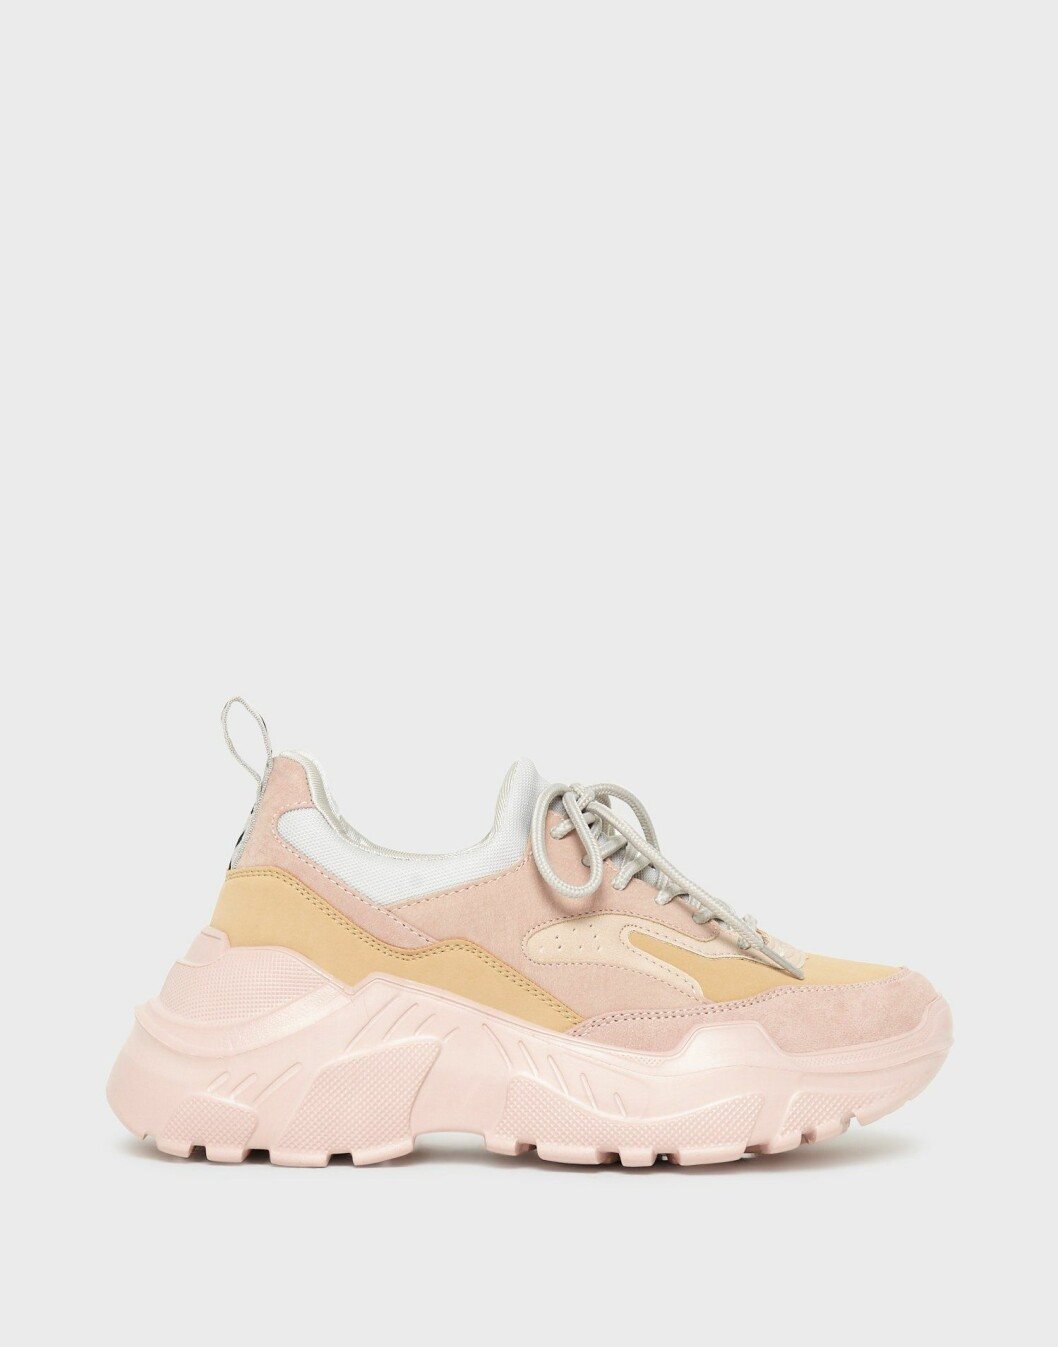 Rosa chunky sneakers från Only.